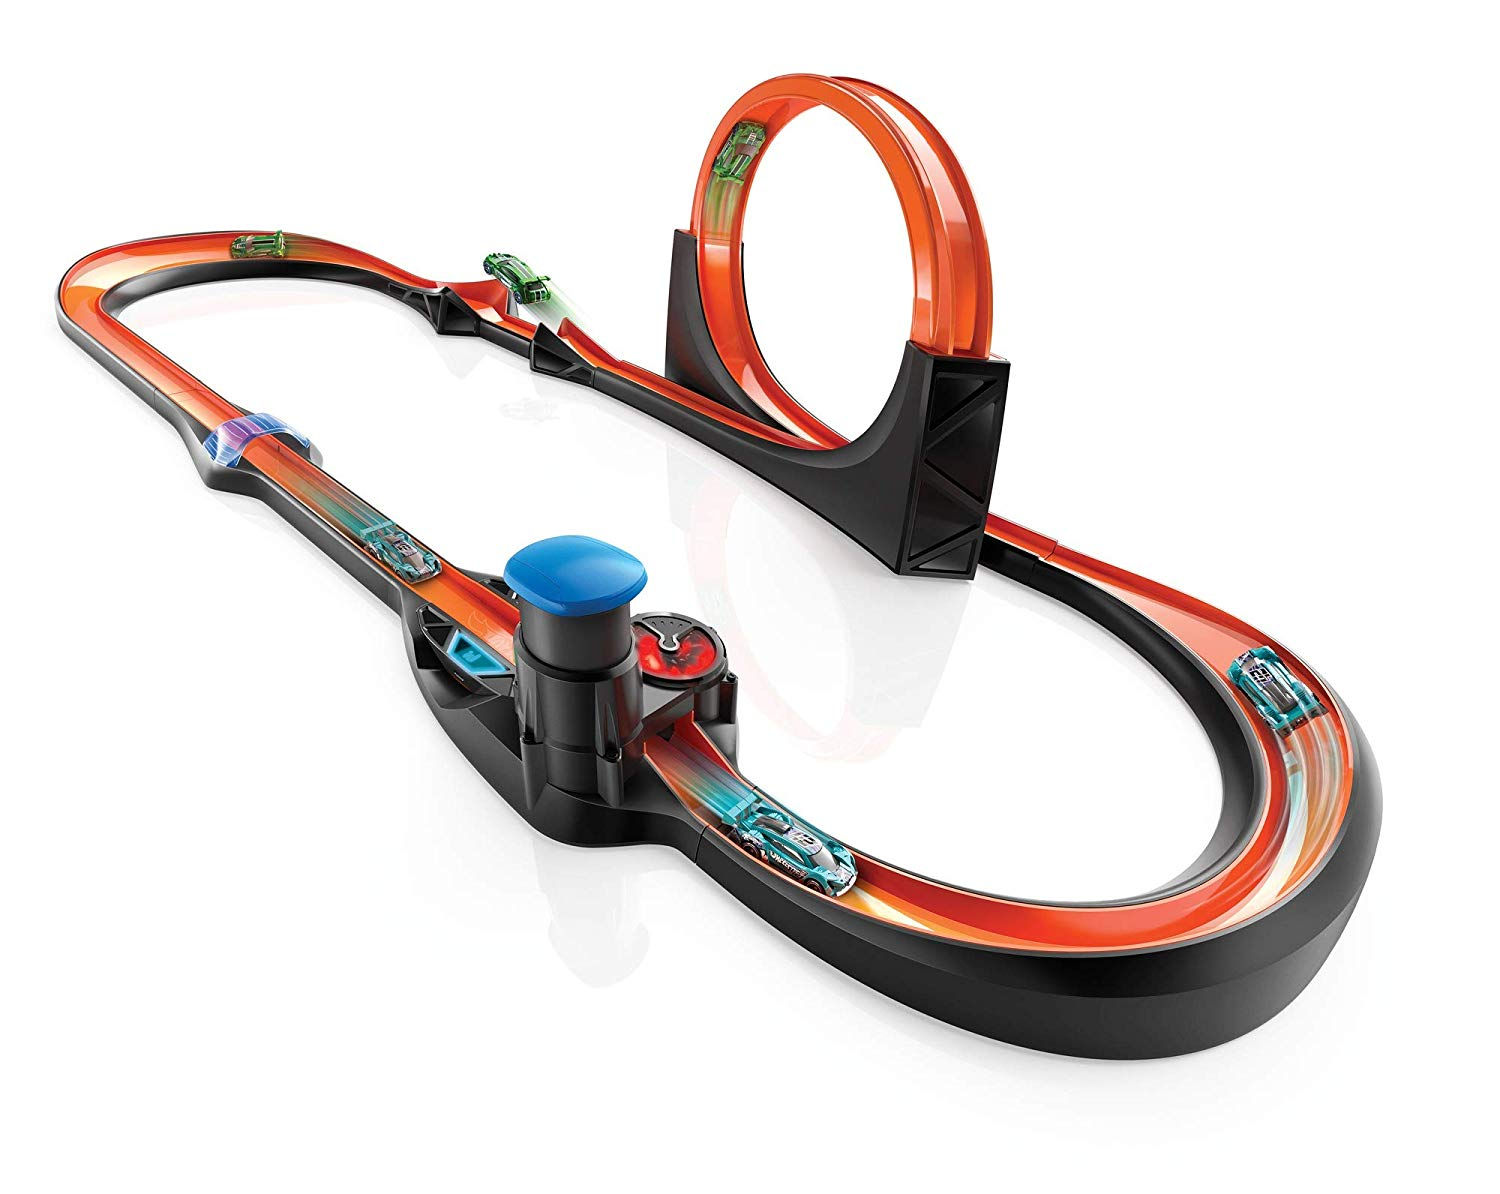 Save £72 on Hot Wheels id GFP20 Smart Track Kit